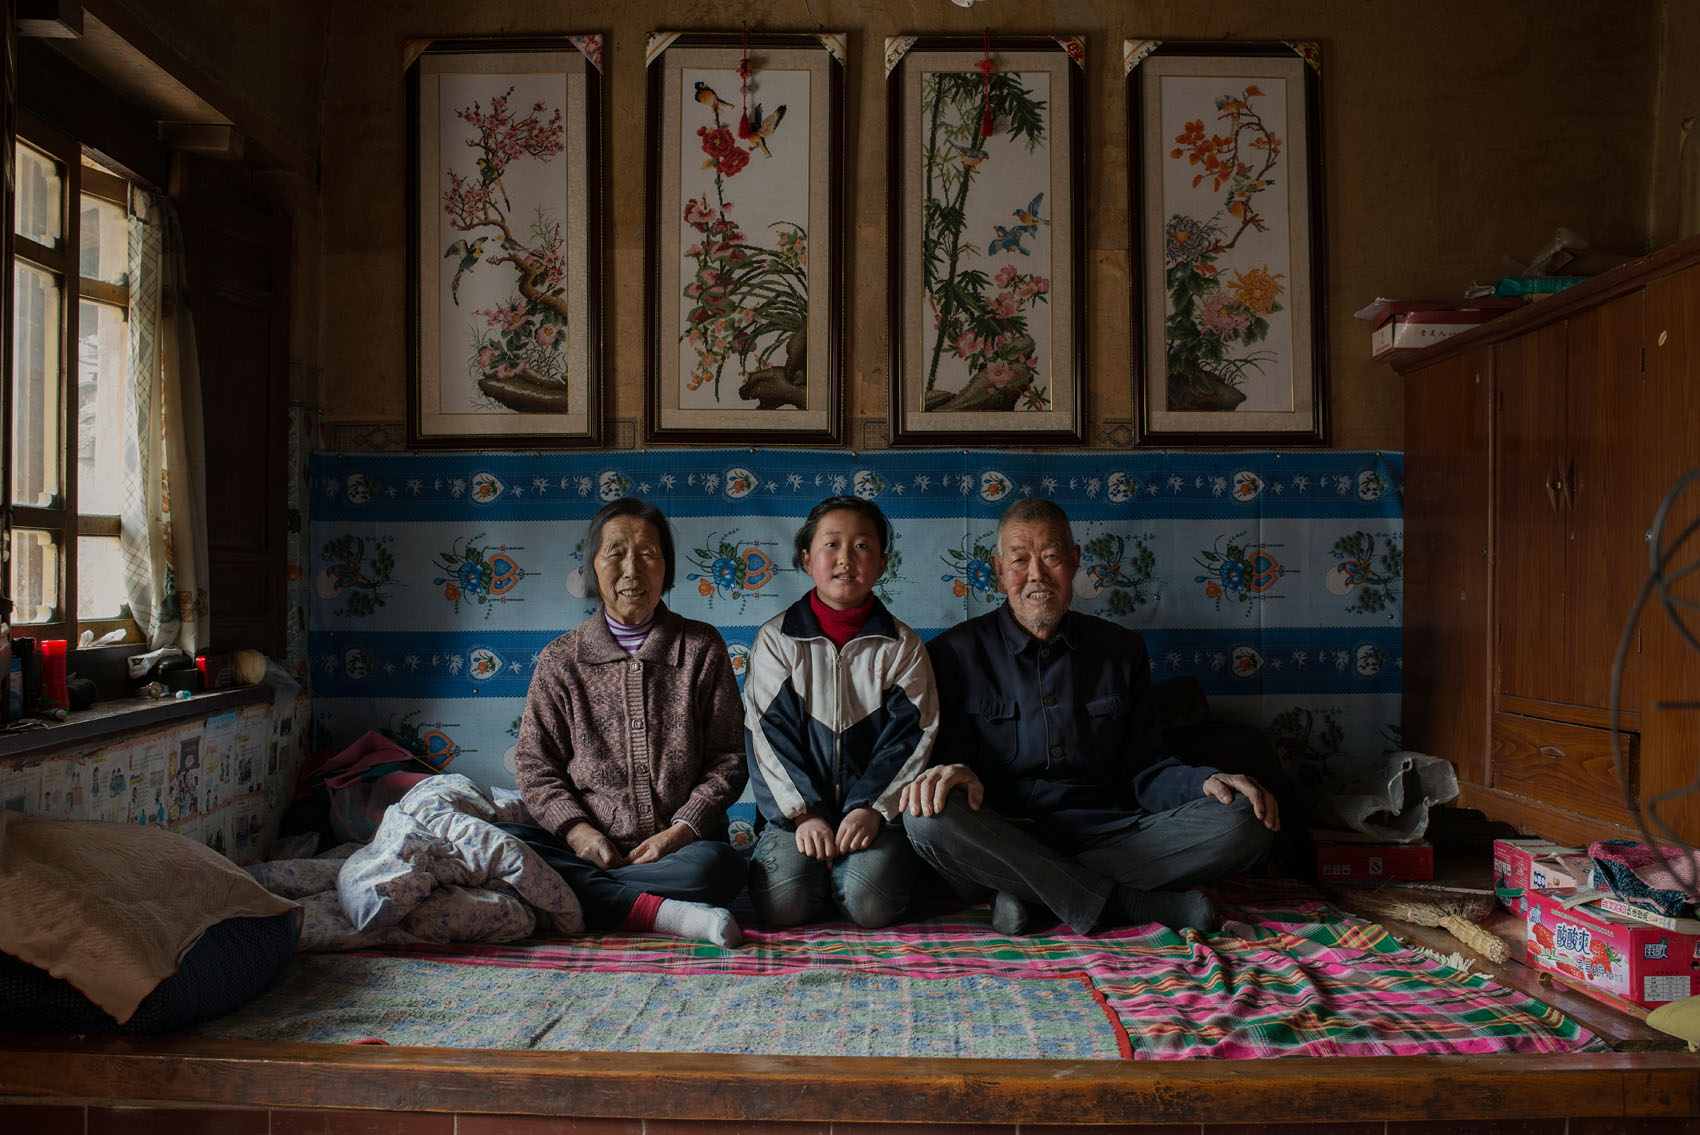 """Jingshan Village  12 years old Xie Hong with her grandparents who are taking care of her. Hong's mum left her after the death of her father (often widows don't stay with in-laws in poor rural China, even at the cost of leaving the children behind). Hong's grandparents are afflicted by heart diseases and the bills pile up, straining the household meagre incomes. Hong says she wants to study to become a doctor """"to take care of my grandparents, too often sick"""".  The frames above the kang are embroidery made by Hong's grandmother. Embroidery patterns and frames are sold at local markets and are popular home decoration in this part of China."""